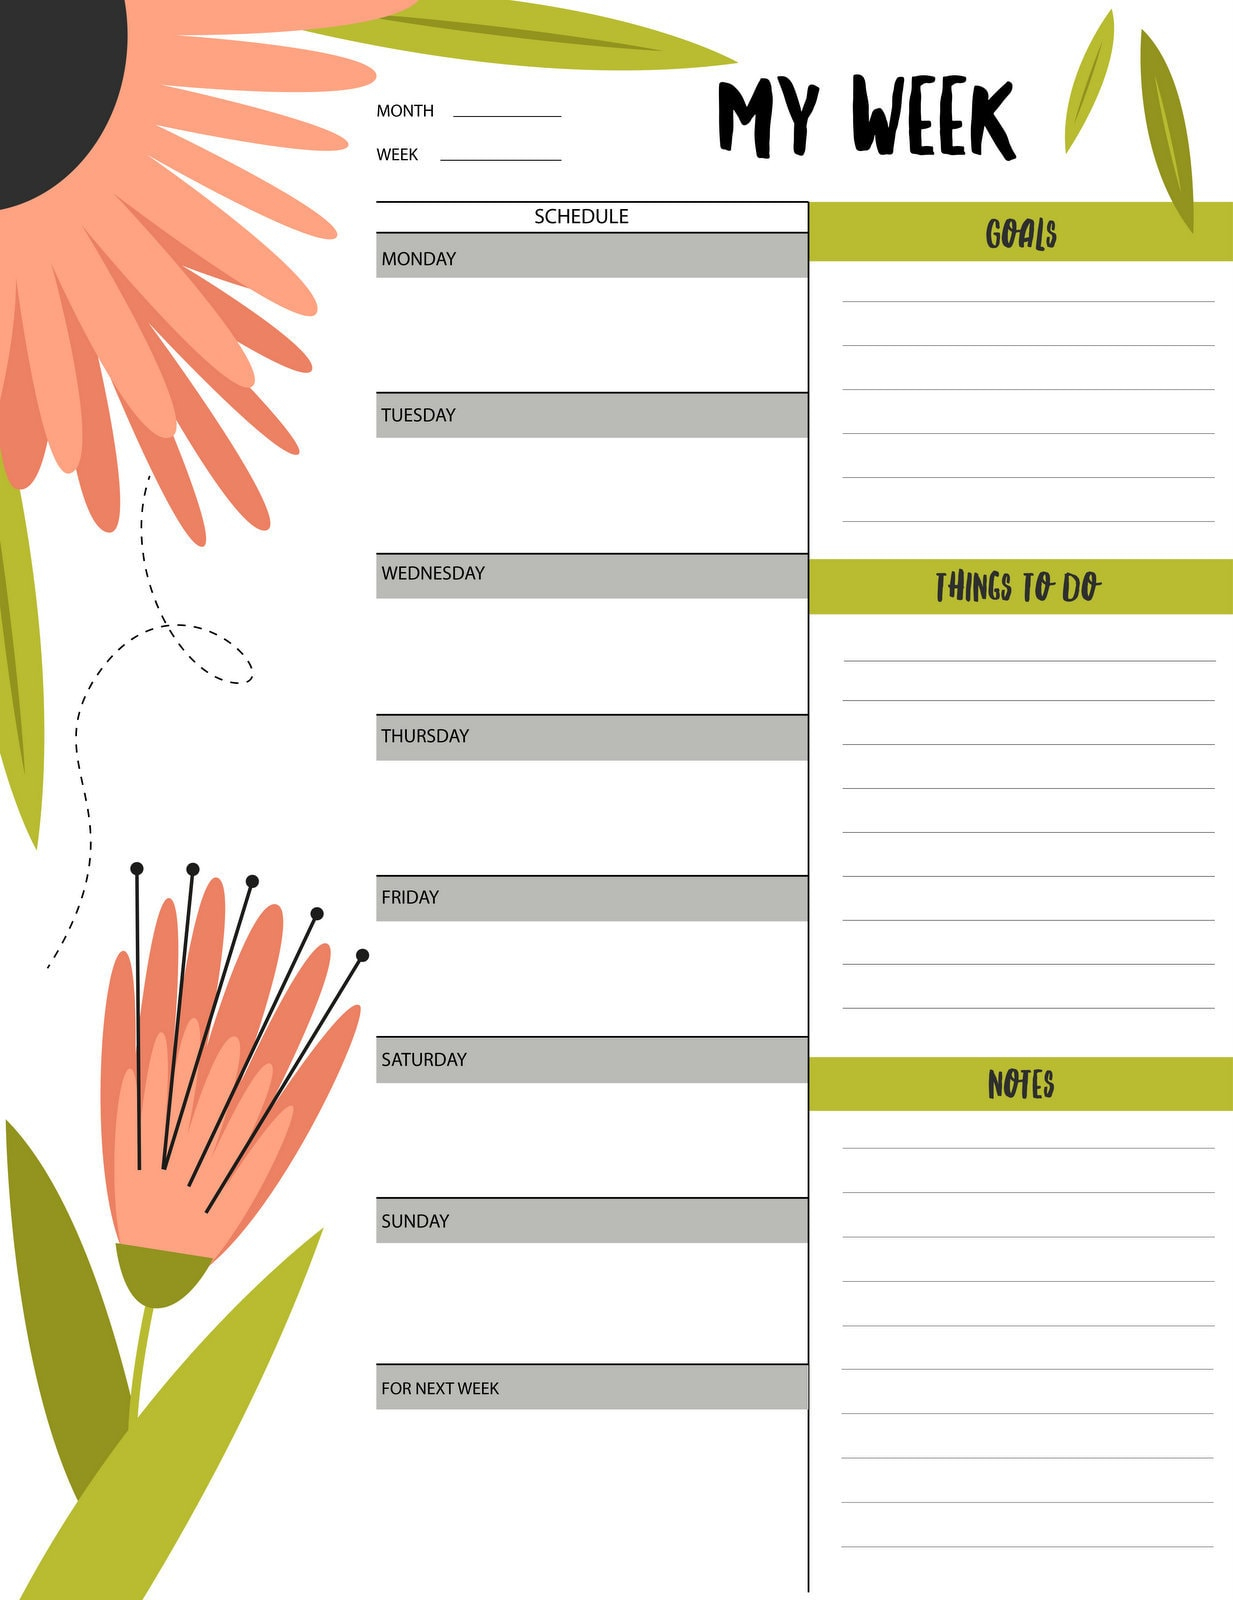 """Floral """"My Week"""" Schedule & To-Do List Printable - Free"""